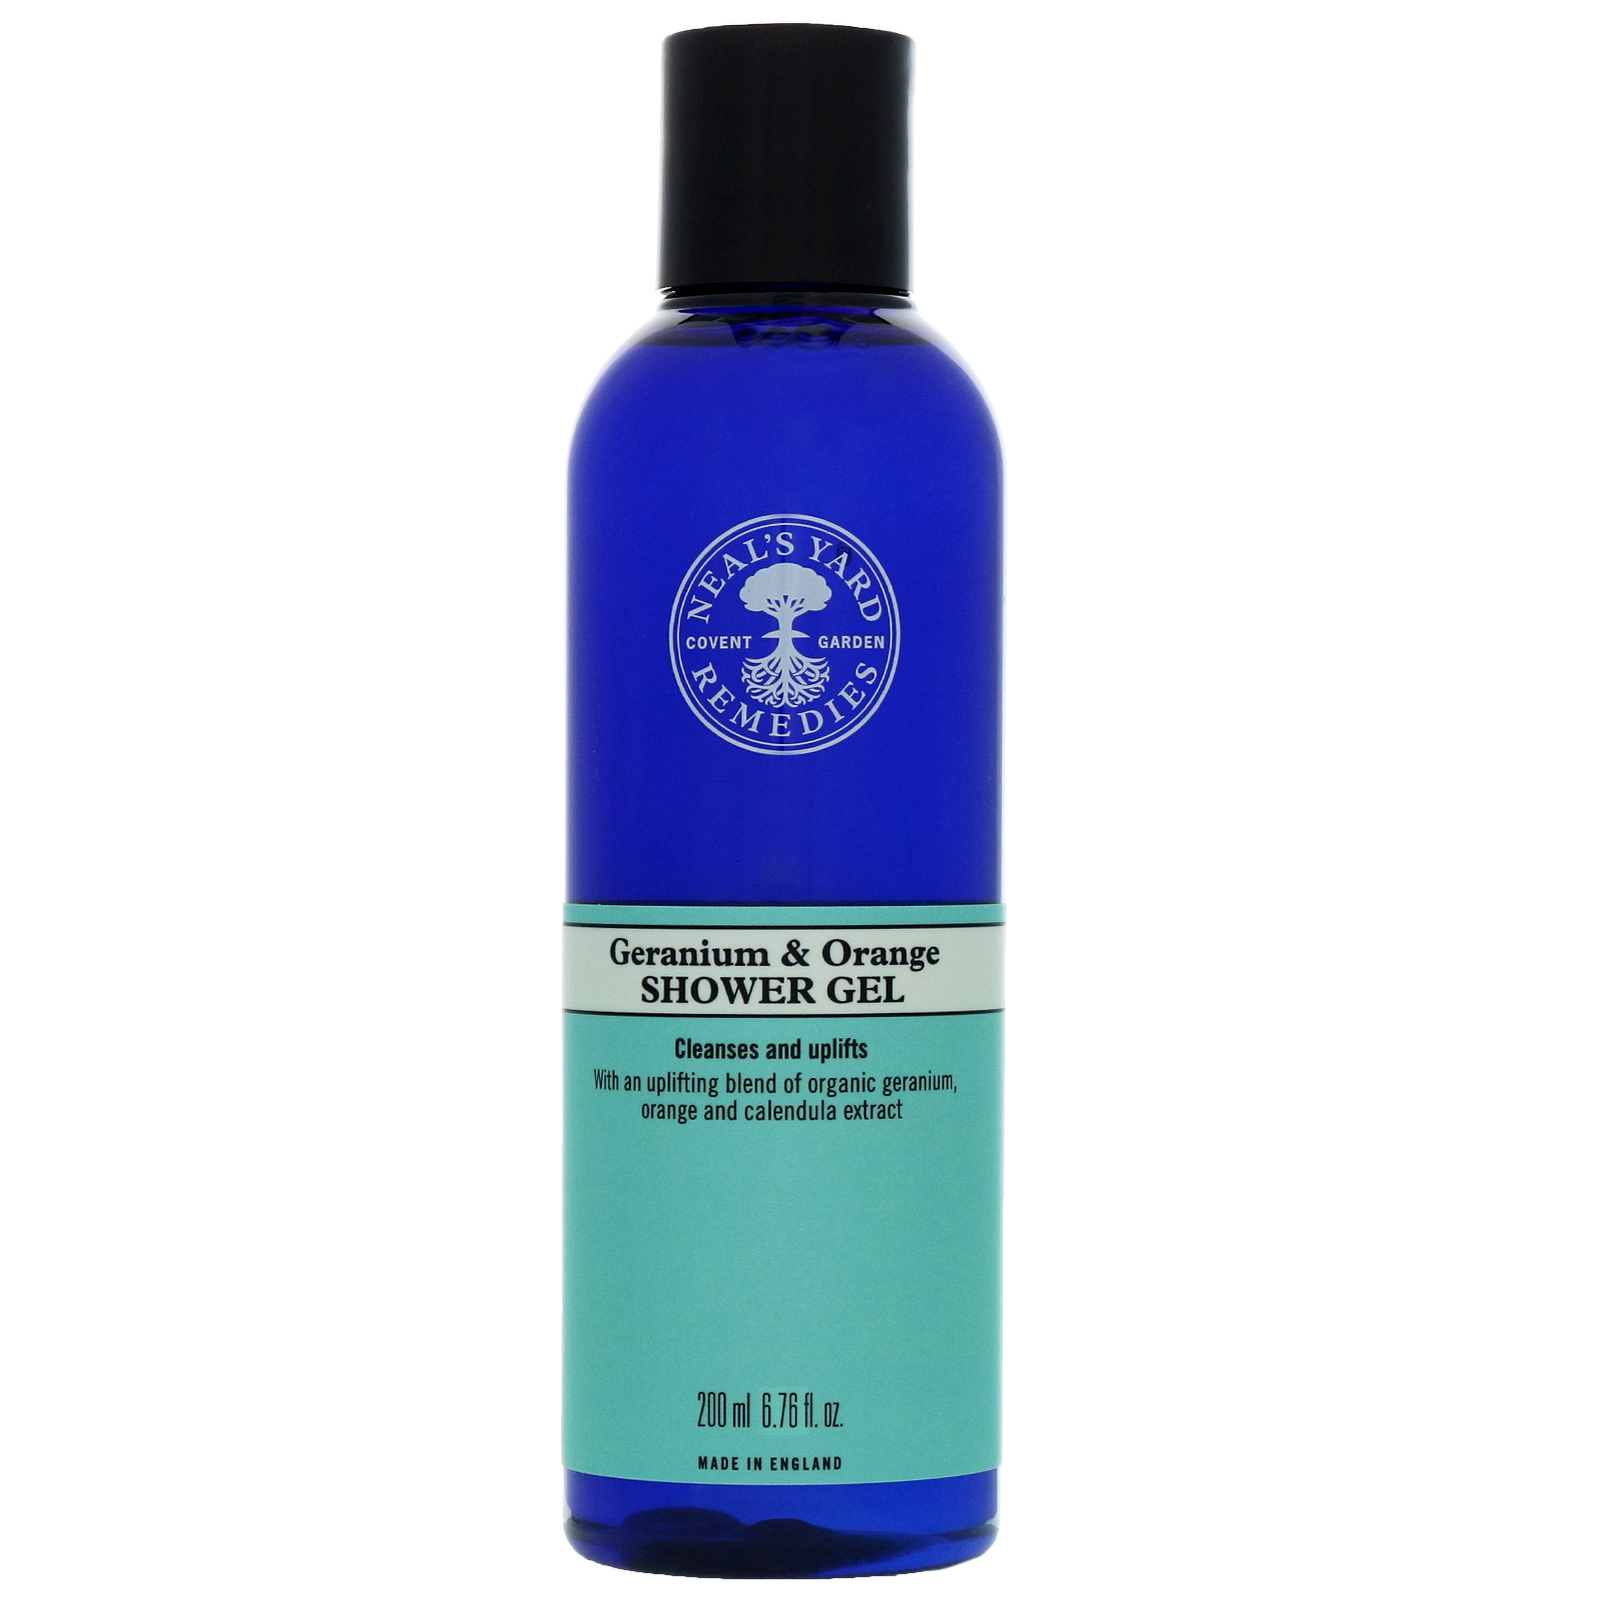 Neal's Yard Remedies Shower Gels & Soaps Geranium & Orange Shower Gel 200ml